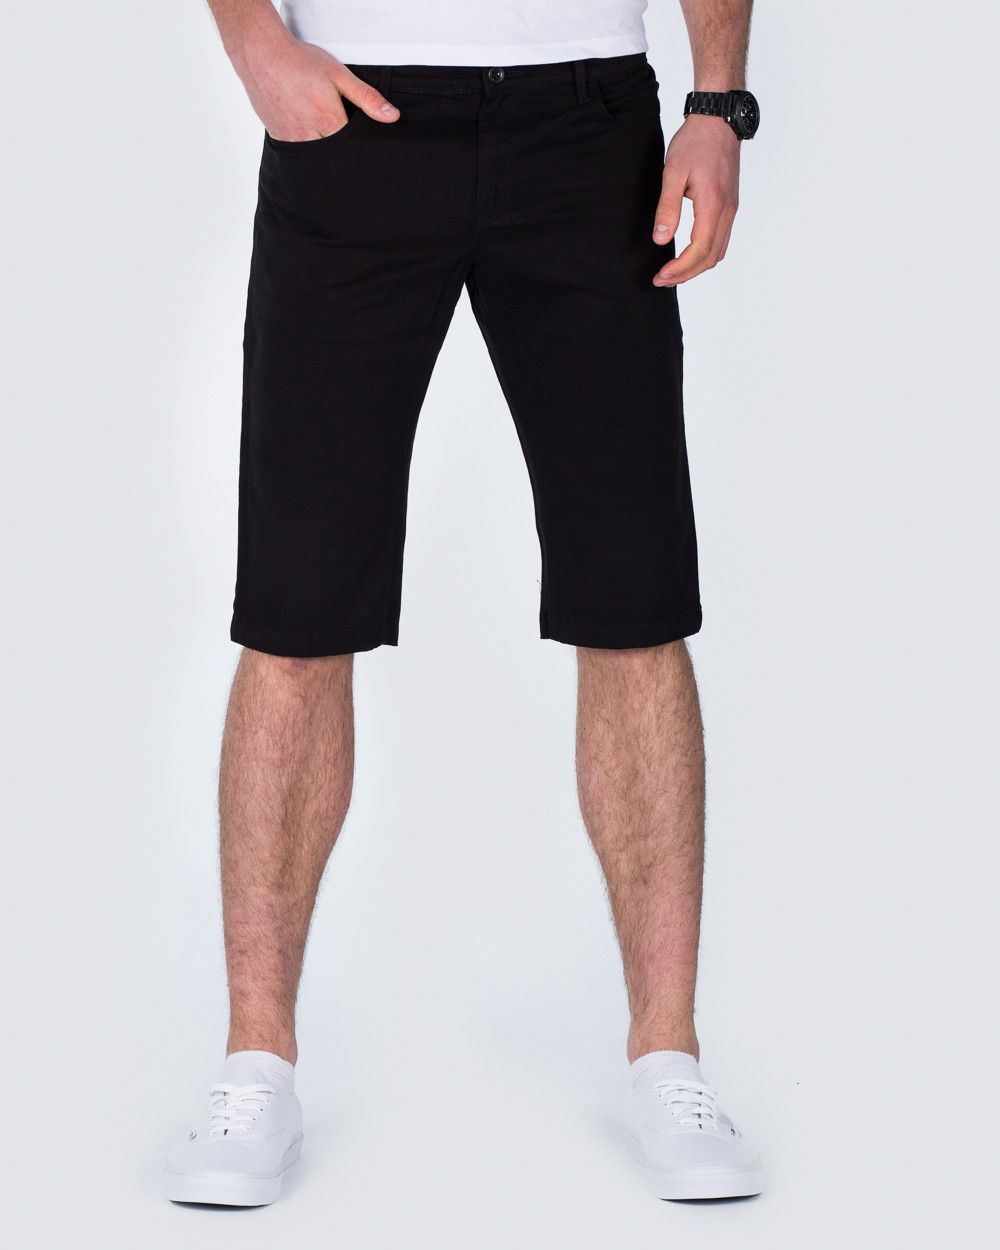 Chino Shorts. No summer without men's chino shorts. Easy to style and easy to wear, they are the better choice for the casual look. Our selection of men's chino shorts covers the season's colour scheme from toned-down neutrals to the occasional pop colour.